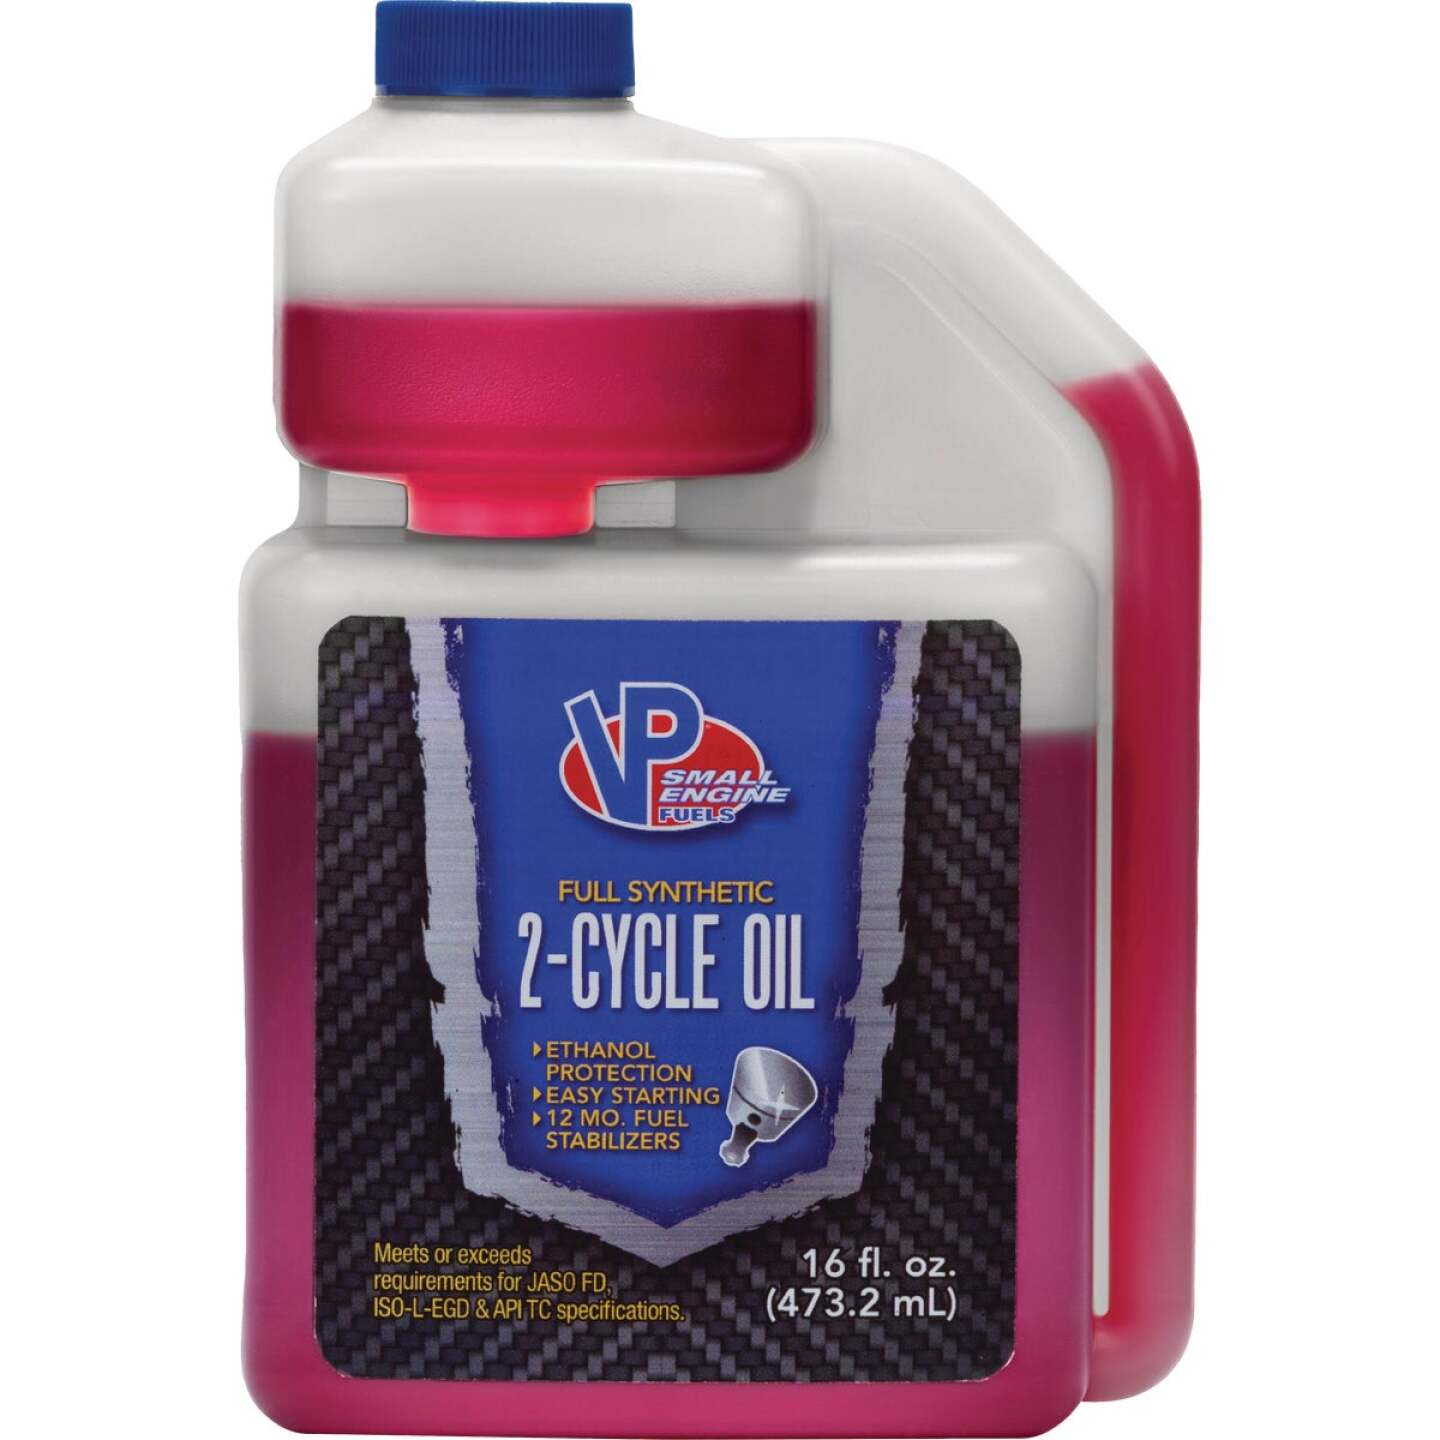 VP Racing 16 Oz. 2-Cycle Oil Fuel Image 1